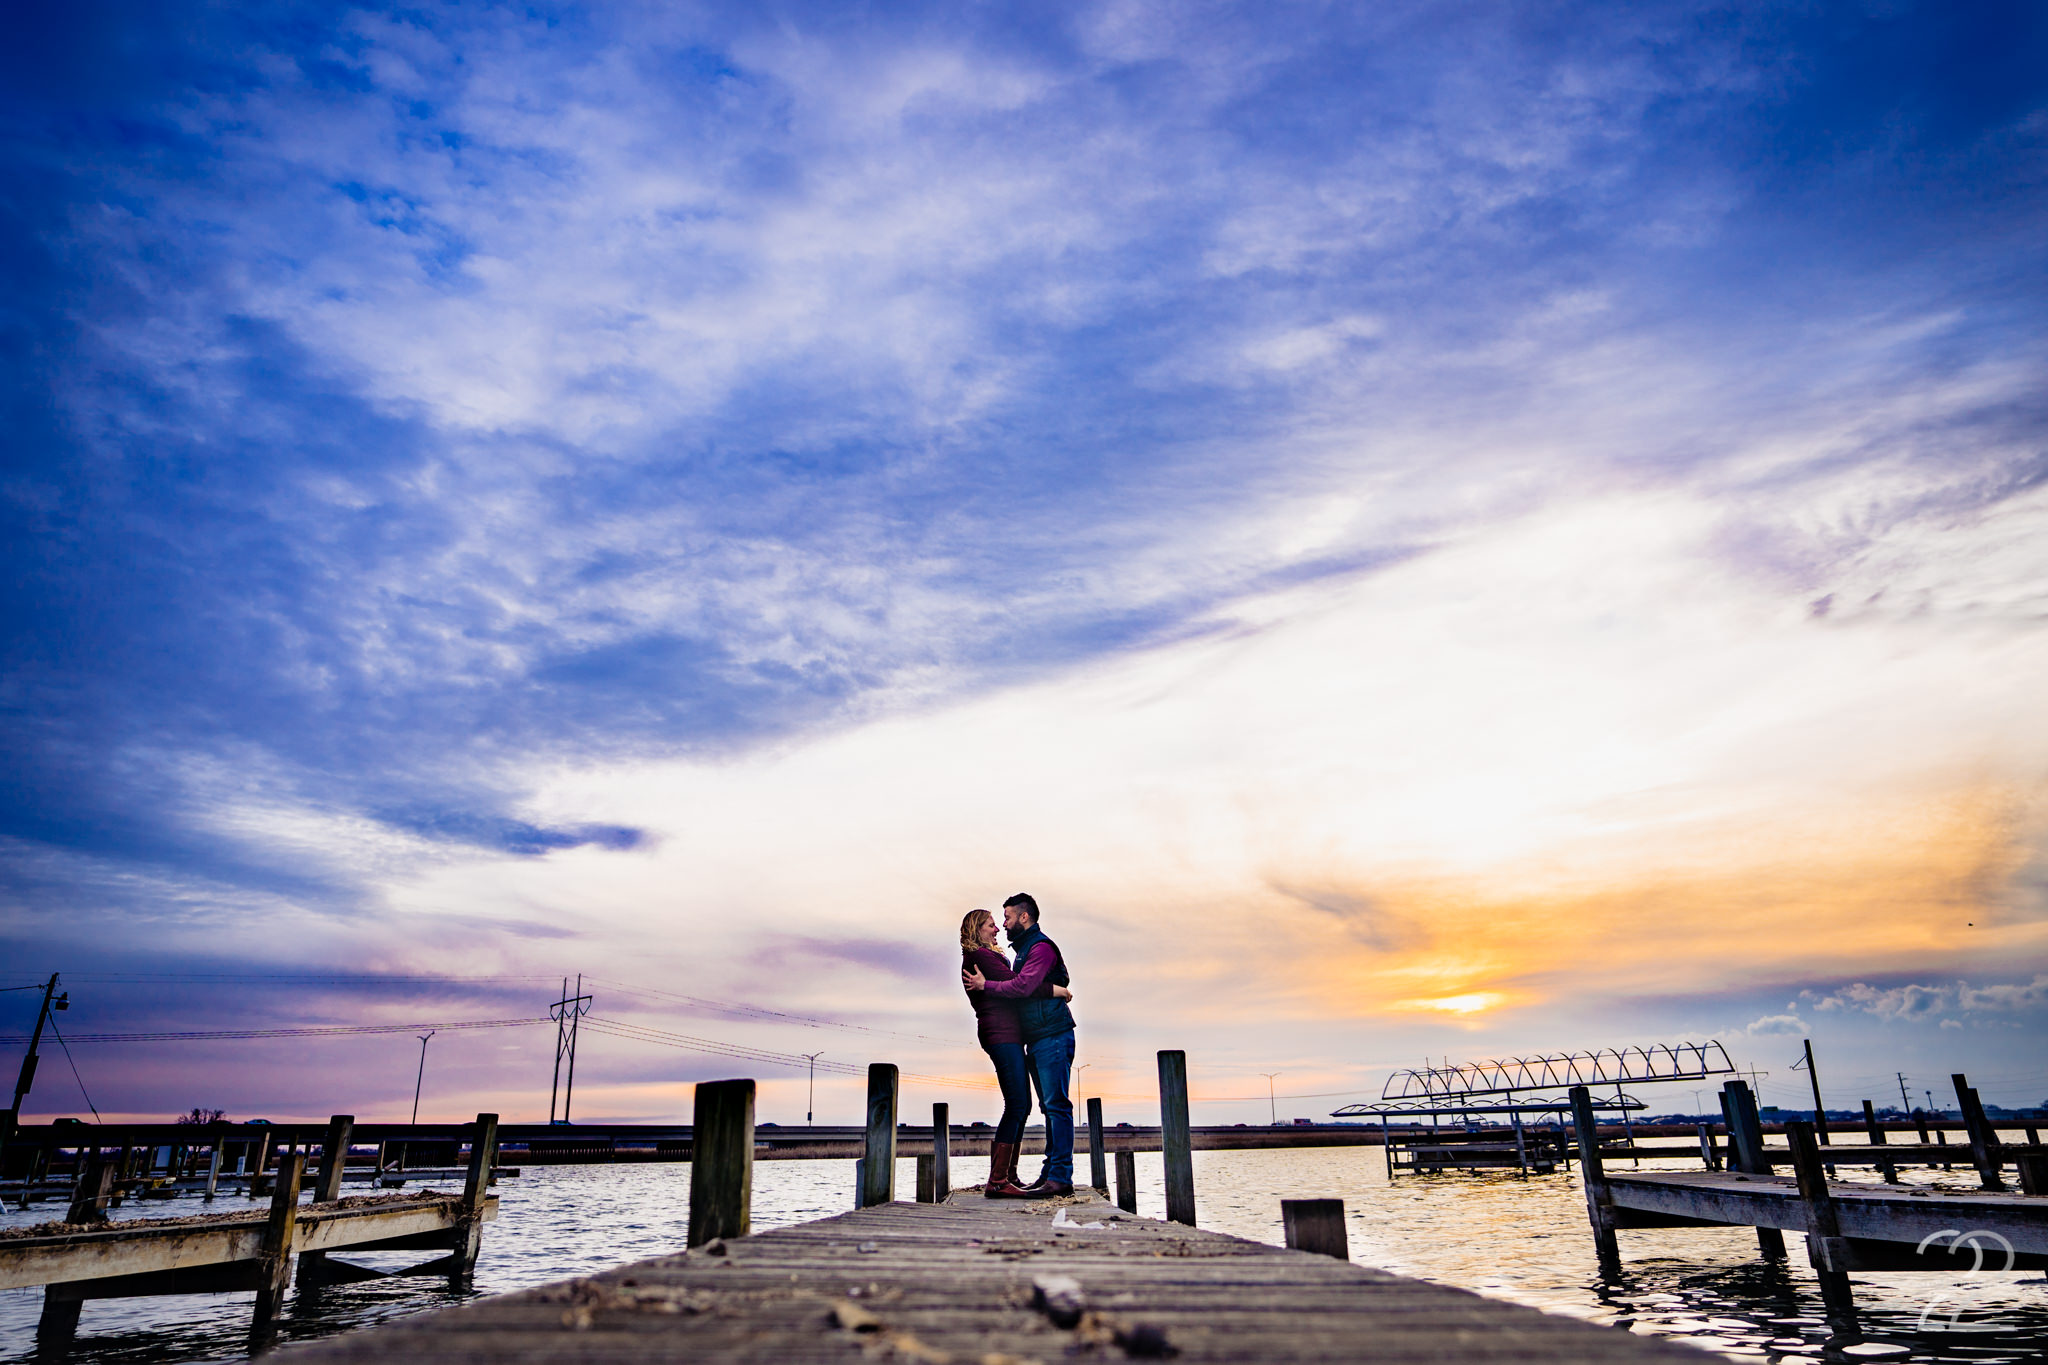 Waterfront views, a cuddly couple and a Madison Wisconsin autumn sunset are the perfect recipe for a piece of art. Megan says an extra word of thanks when nature graces her with something extra special when shooting a couple's shoot.